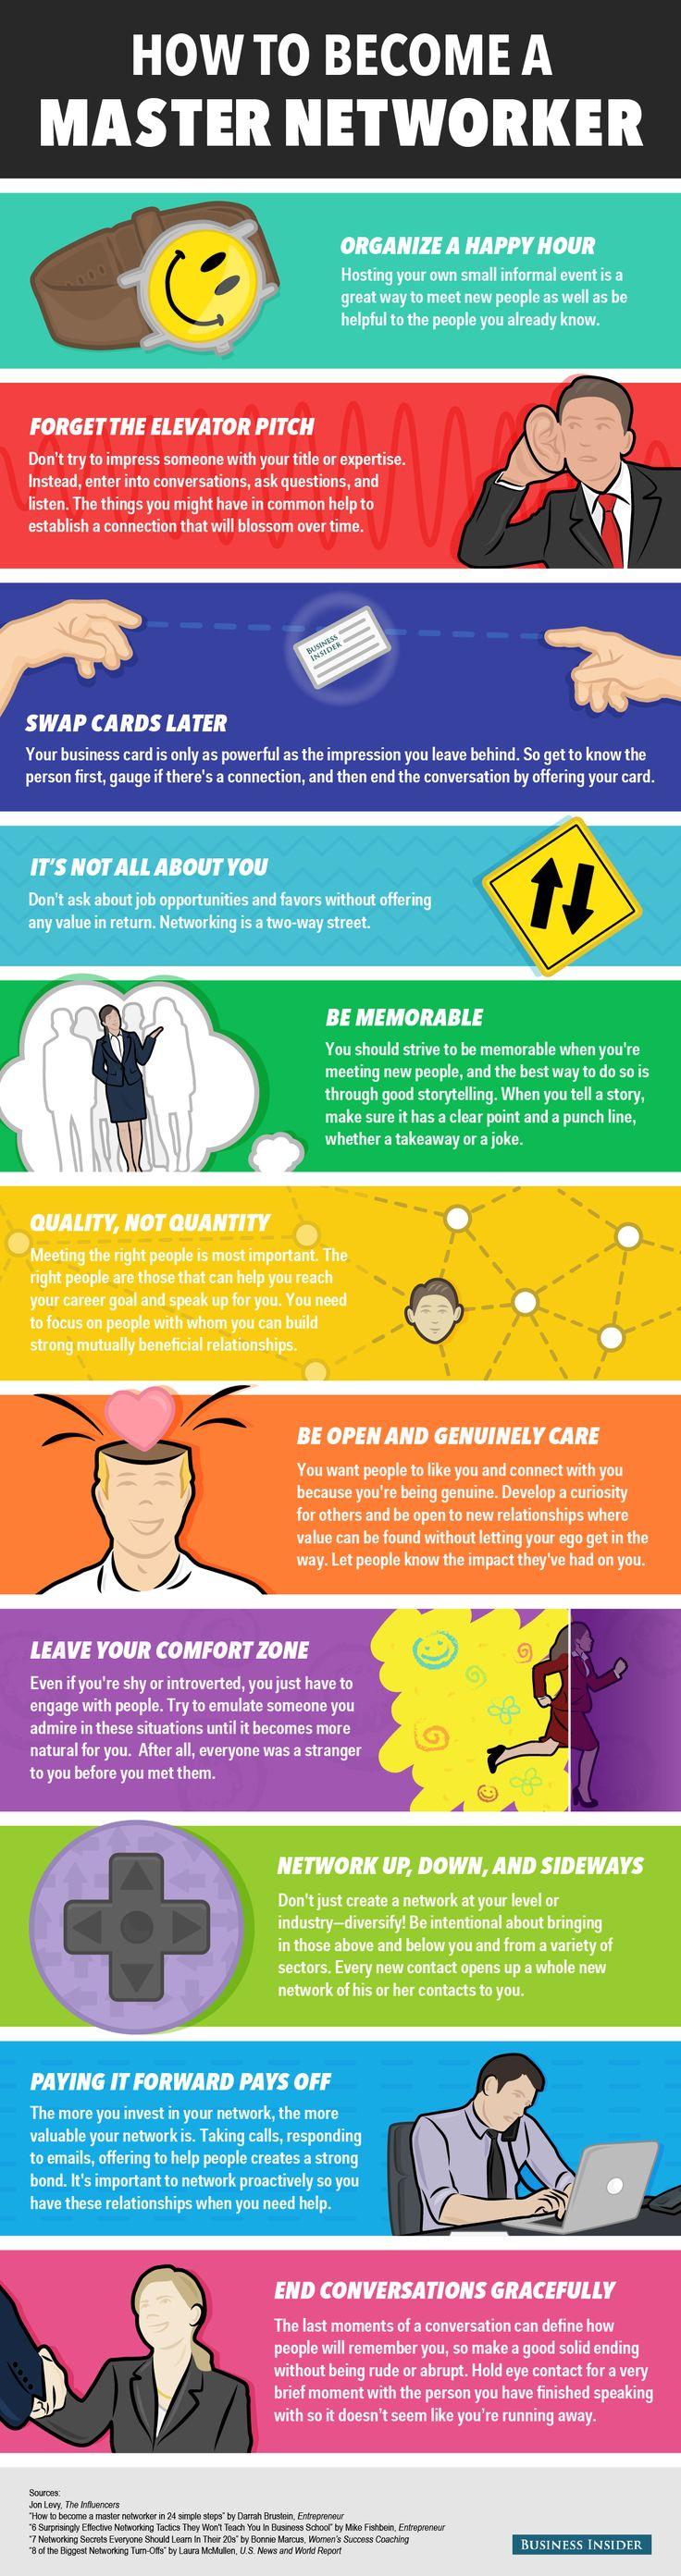 How to Become a Master Networker #infographic #Networking #Marketing